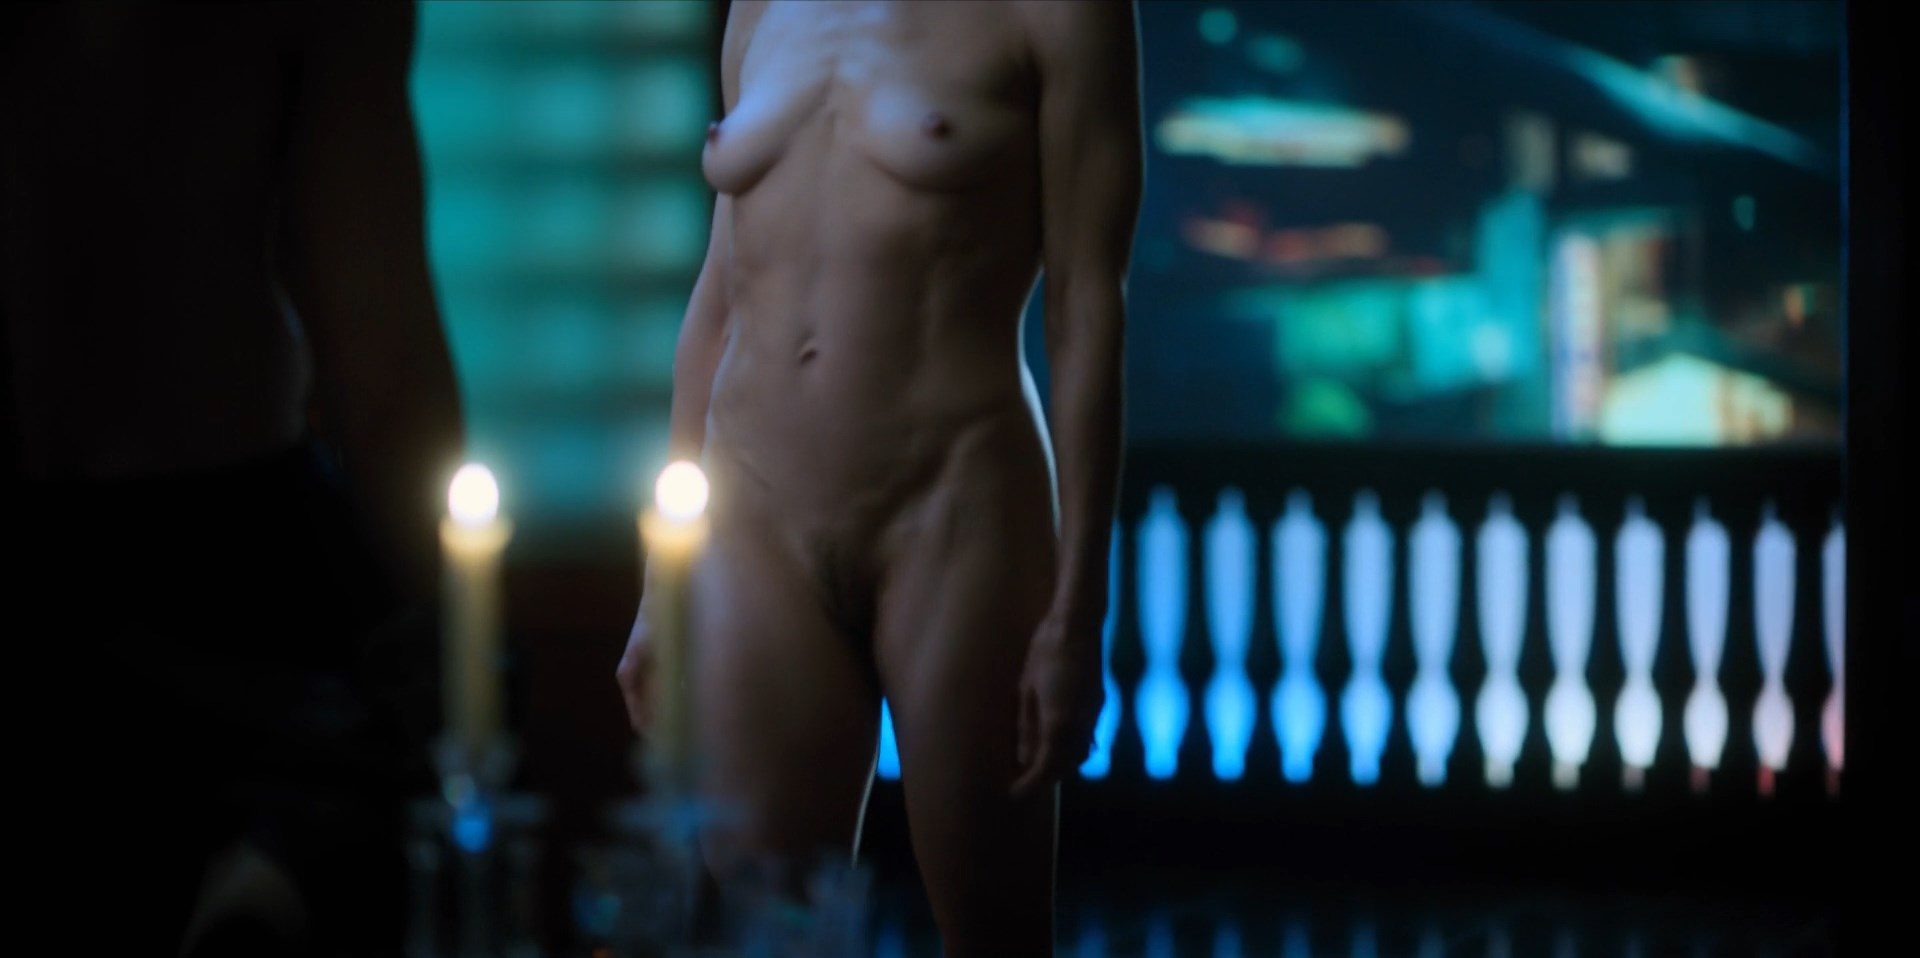 Kristin Lehman - Altered Carbon s01e02 (2018) HD 1080p